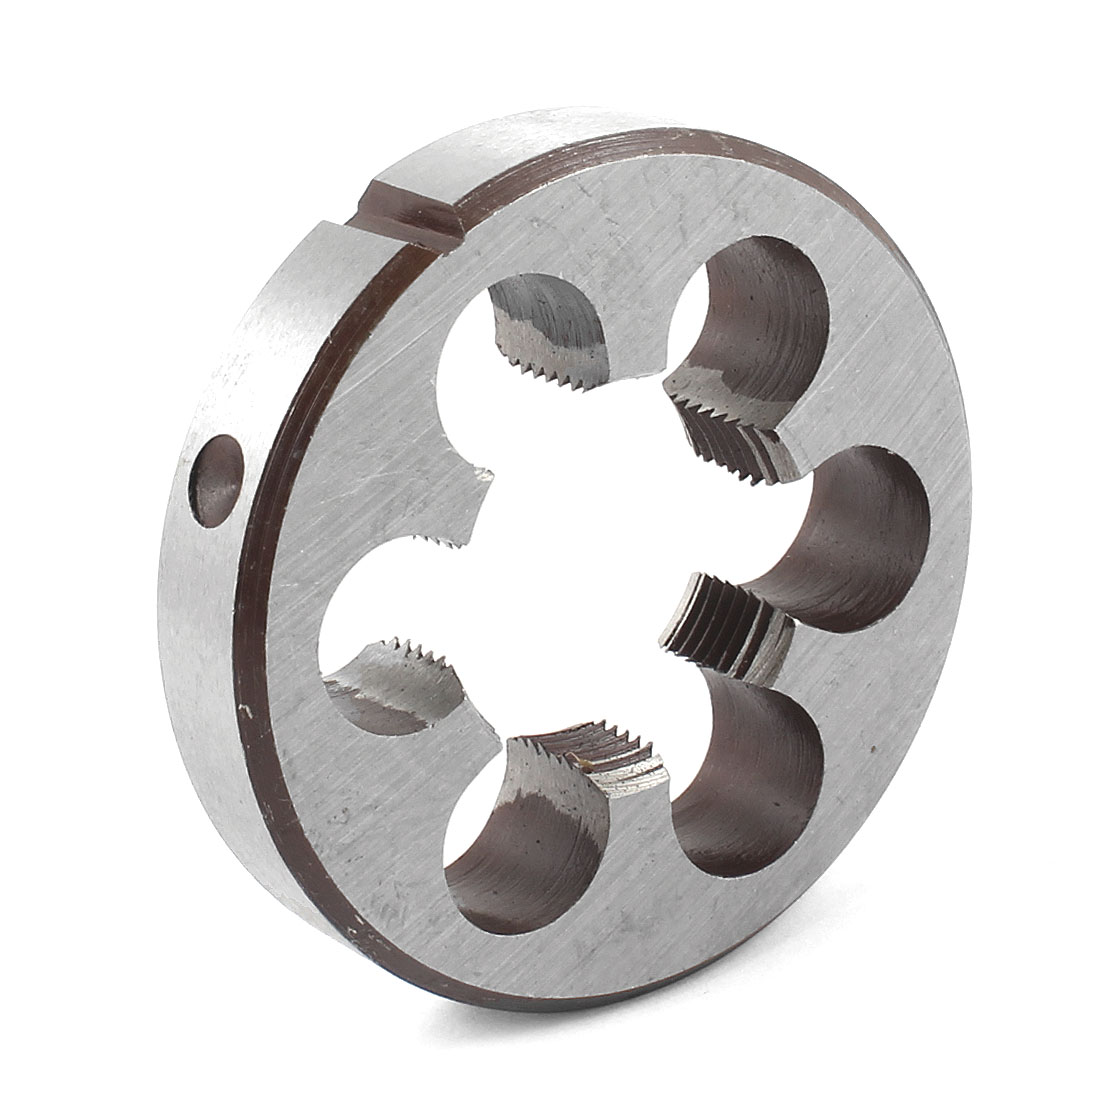 60mm Outside Dia 1.5cm Thickness M30 Round Thread Die Hand Tool